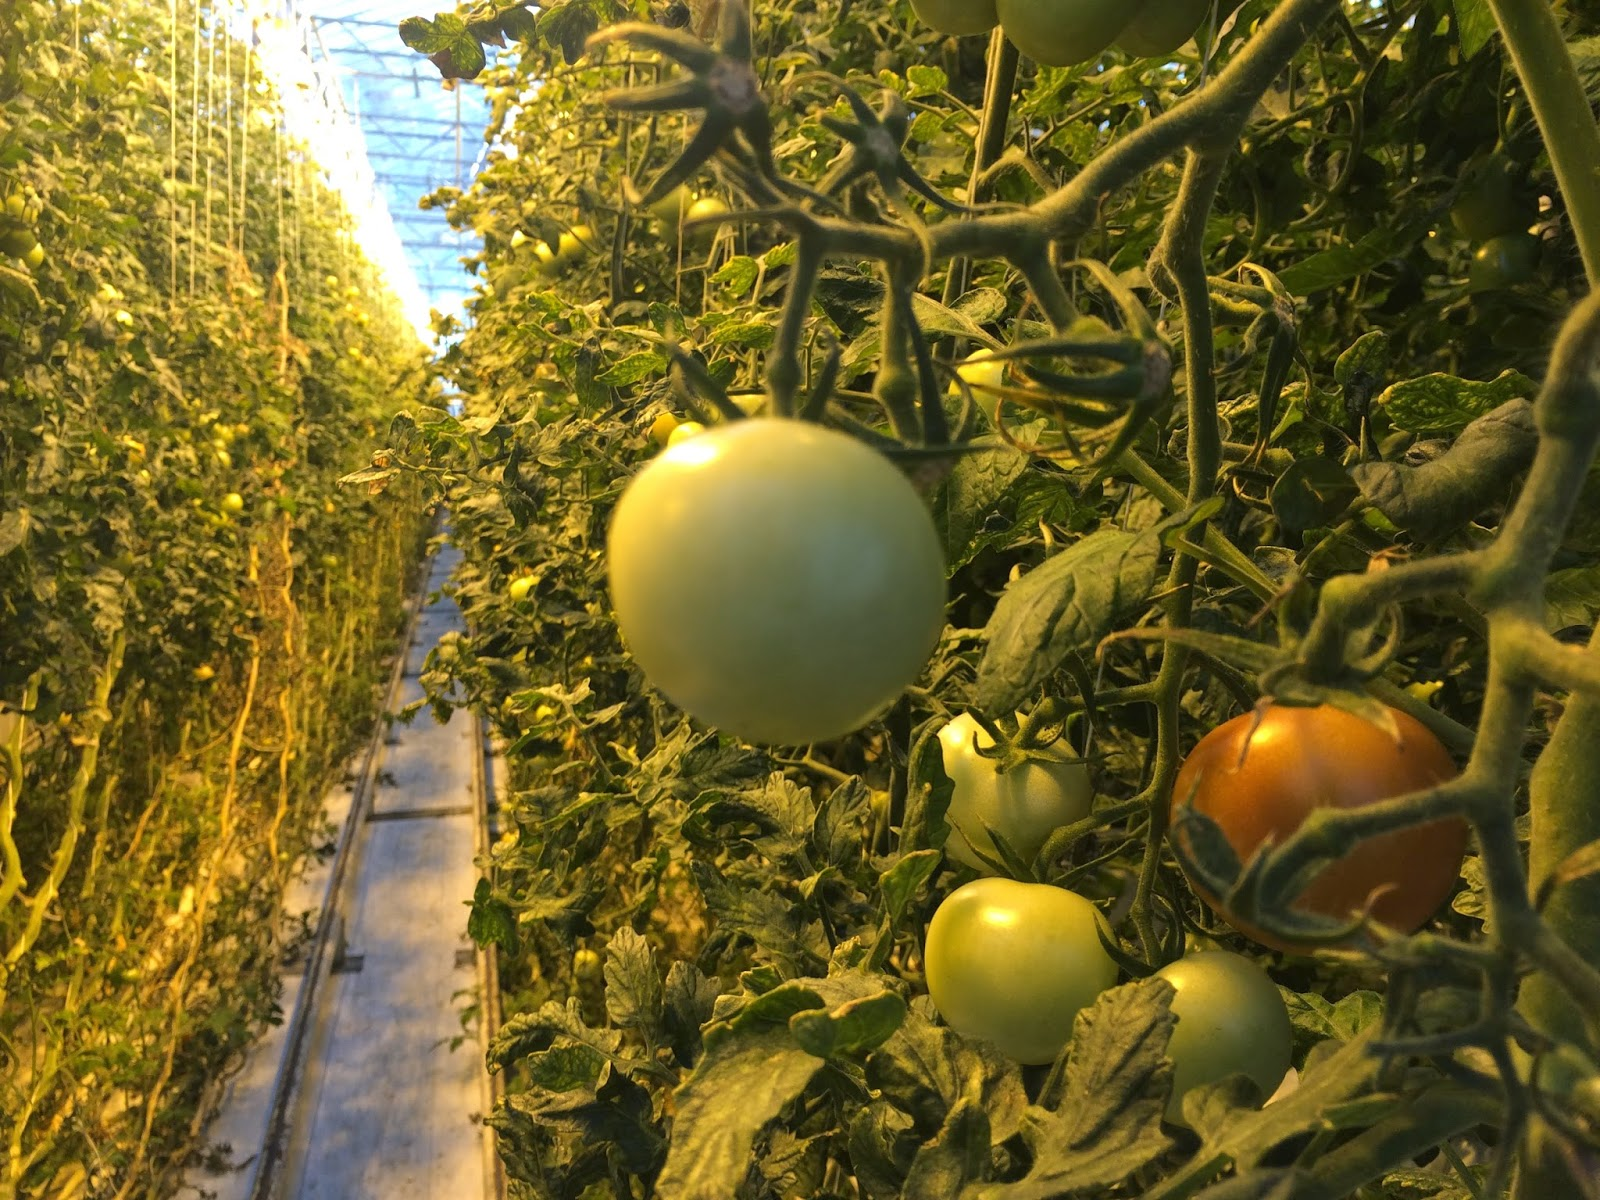 Tomatoes growing at the Fridheimar greenhouse, Iceland